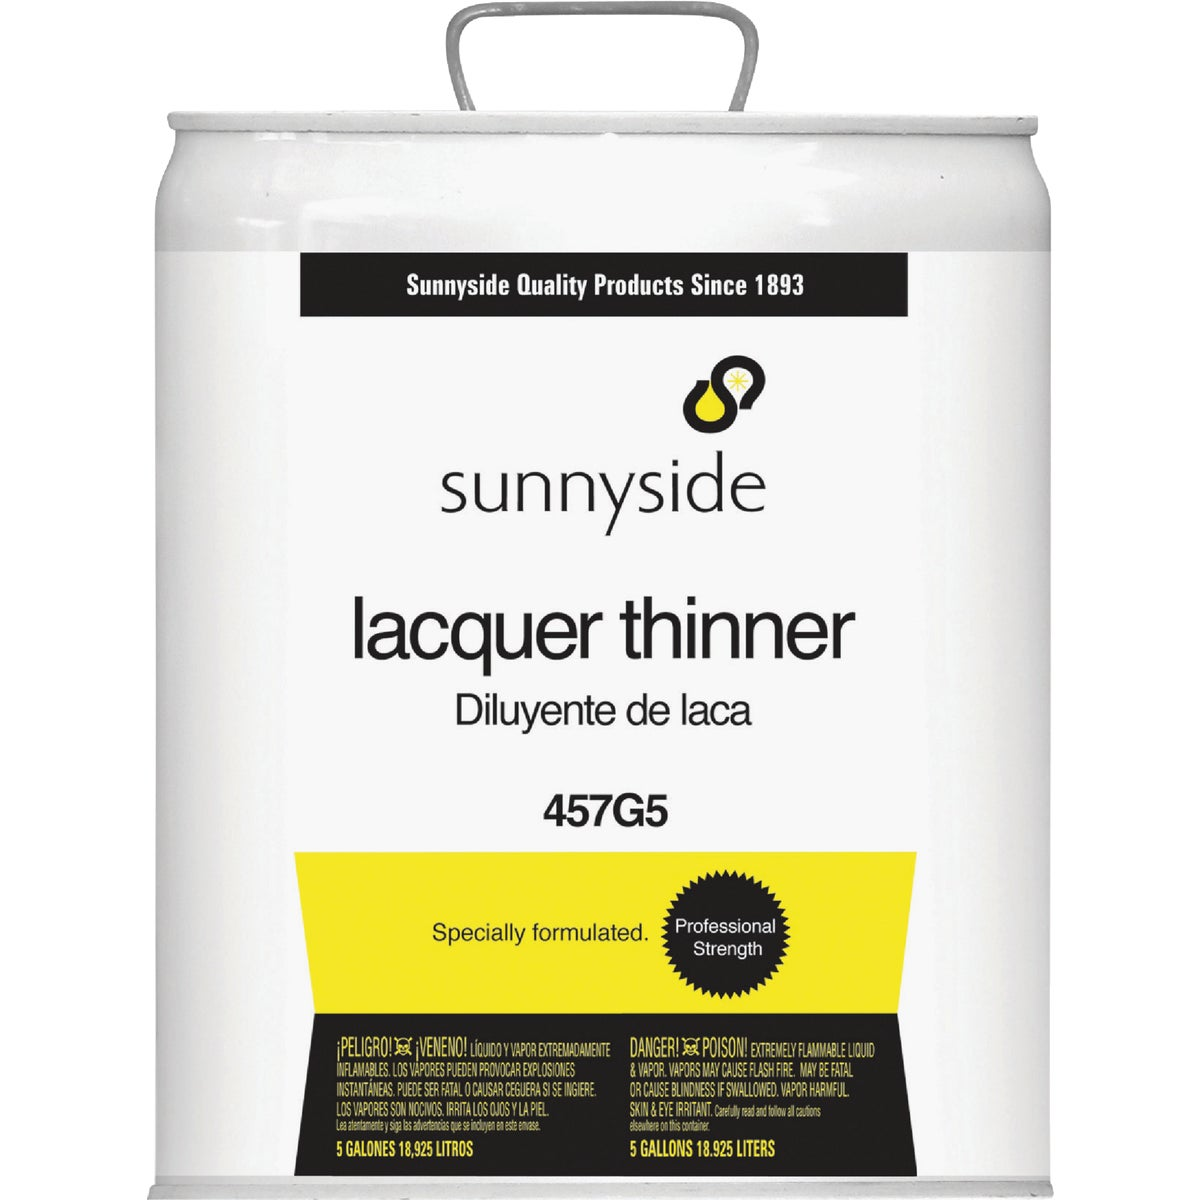 LACQUER THINNER - 457G5 by Sunnyside Corp